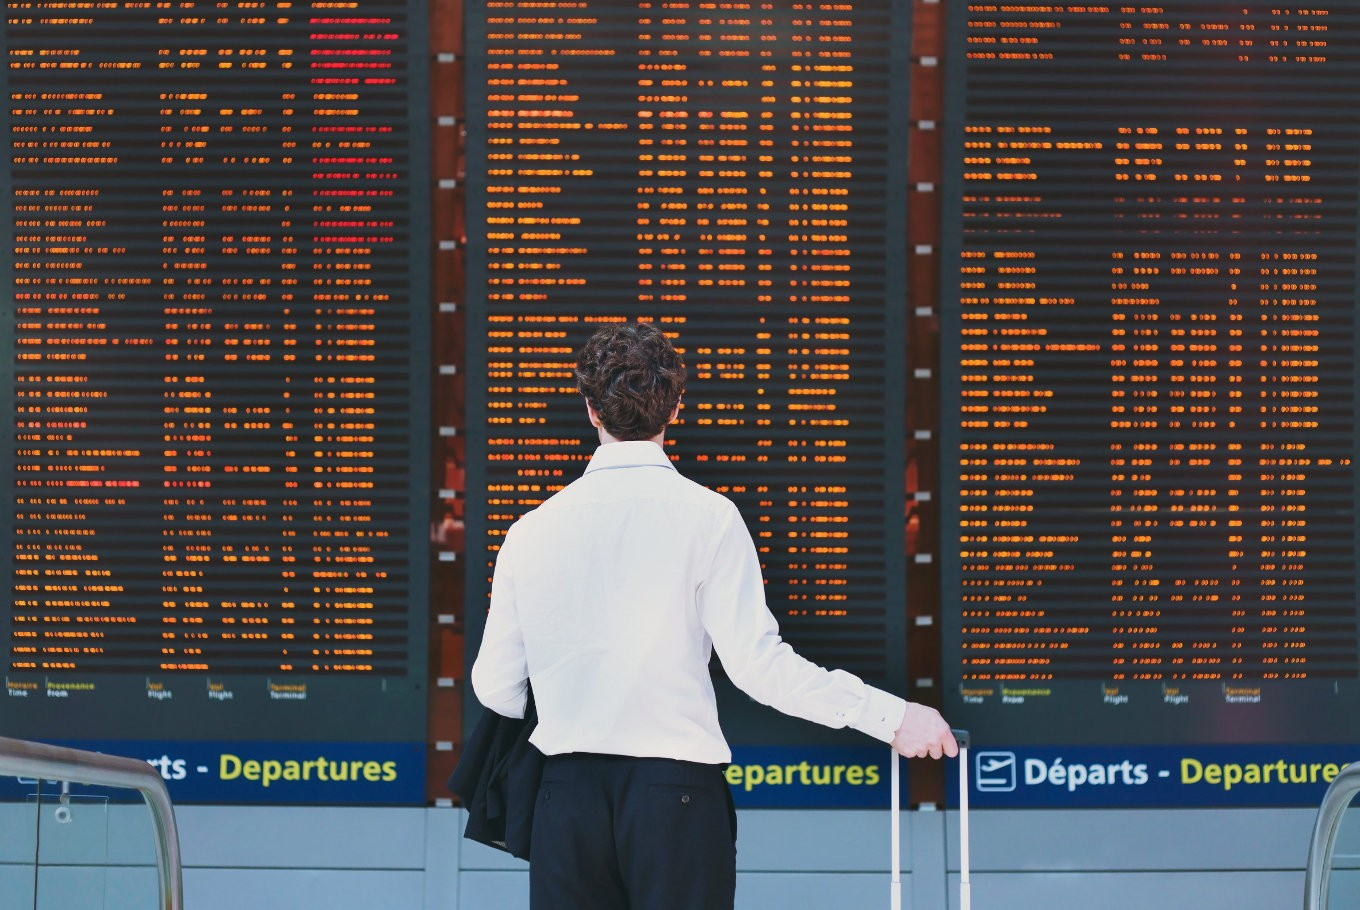 France air traffic responsible for third of Europe delays: Report